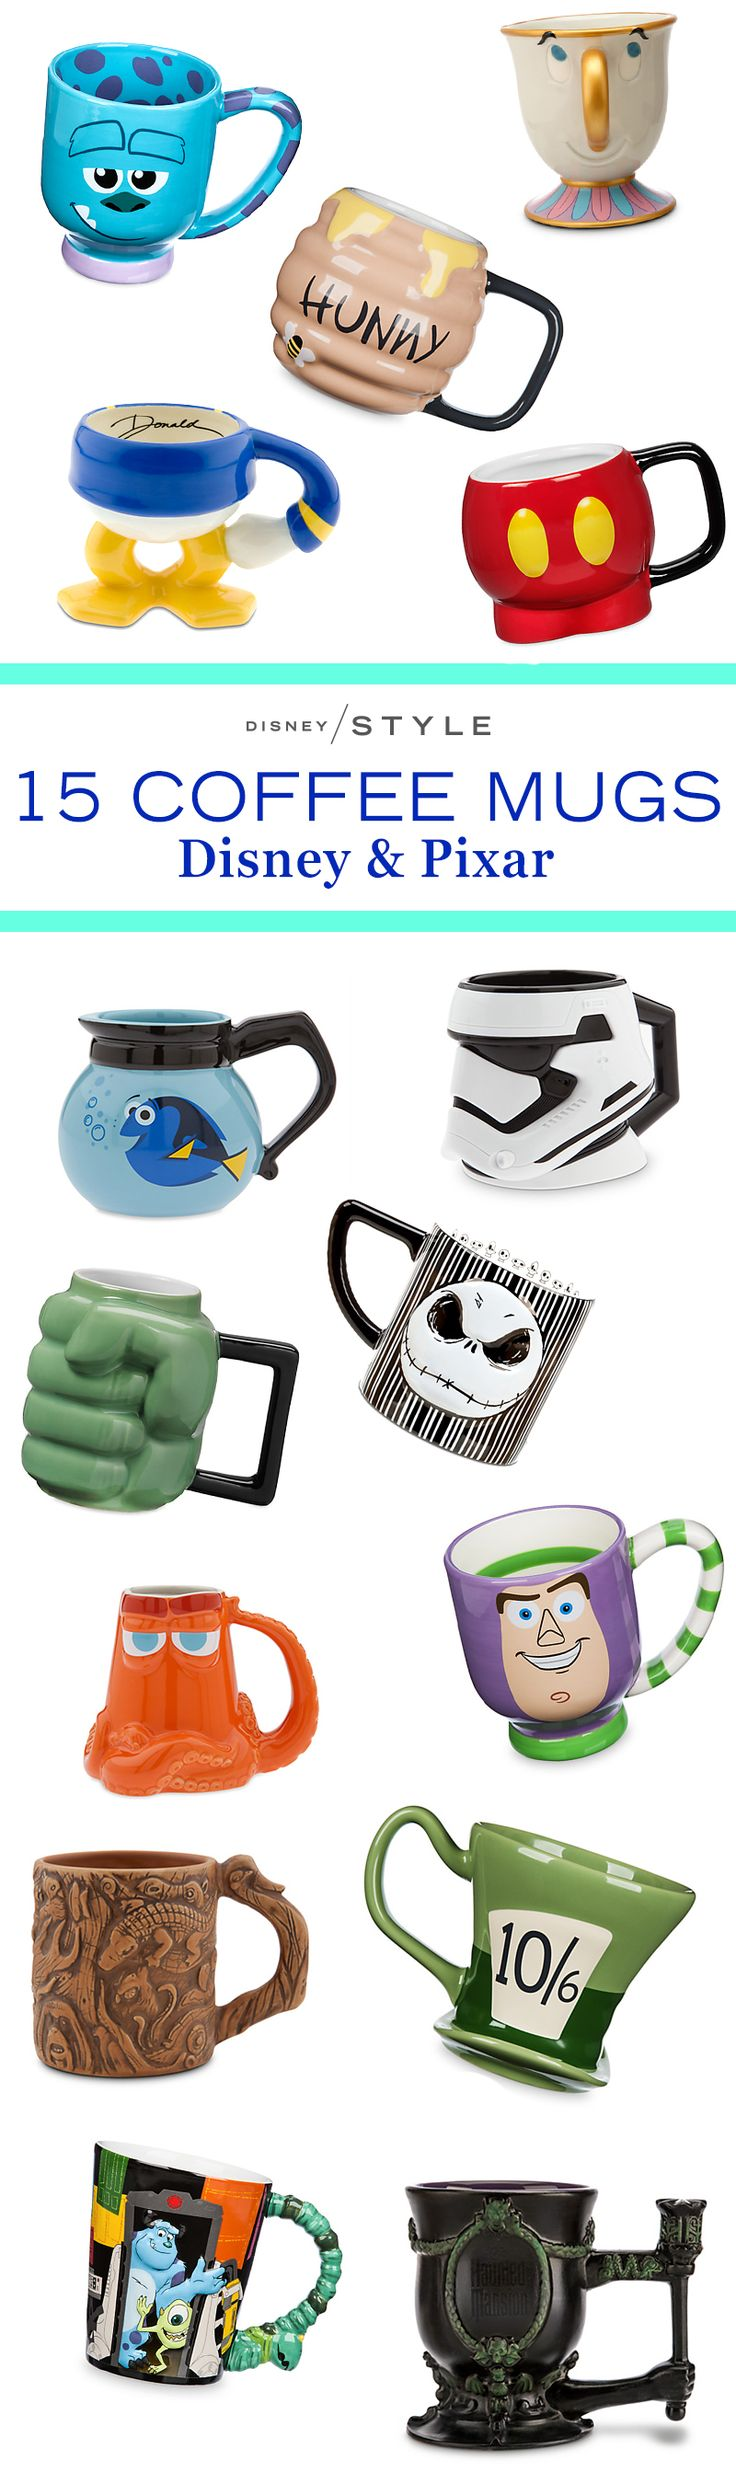 15 Disney & Pixar mugs to make a statement at work | Finding Dory + Toy Story + Star Wars + Winnie the Pooh + Mickey Mouse | [ http://di.sn/6006BIeaE ]